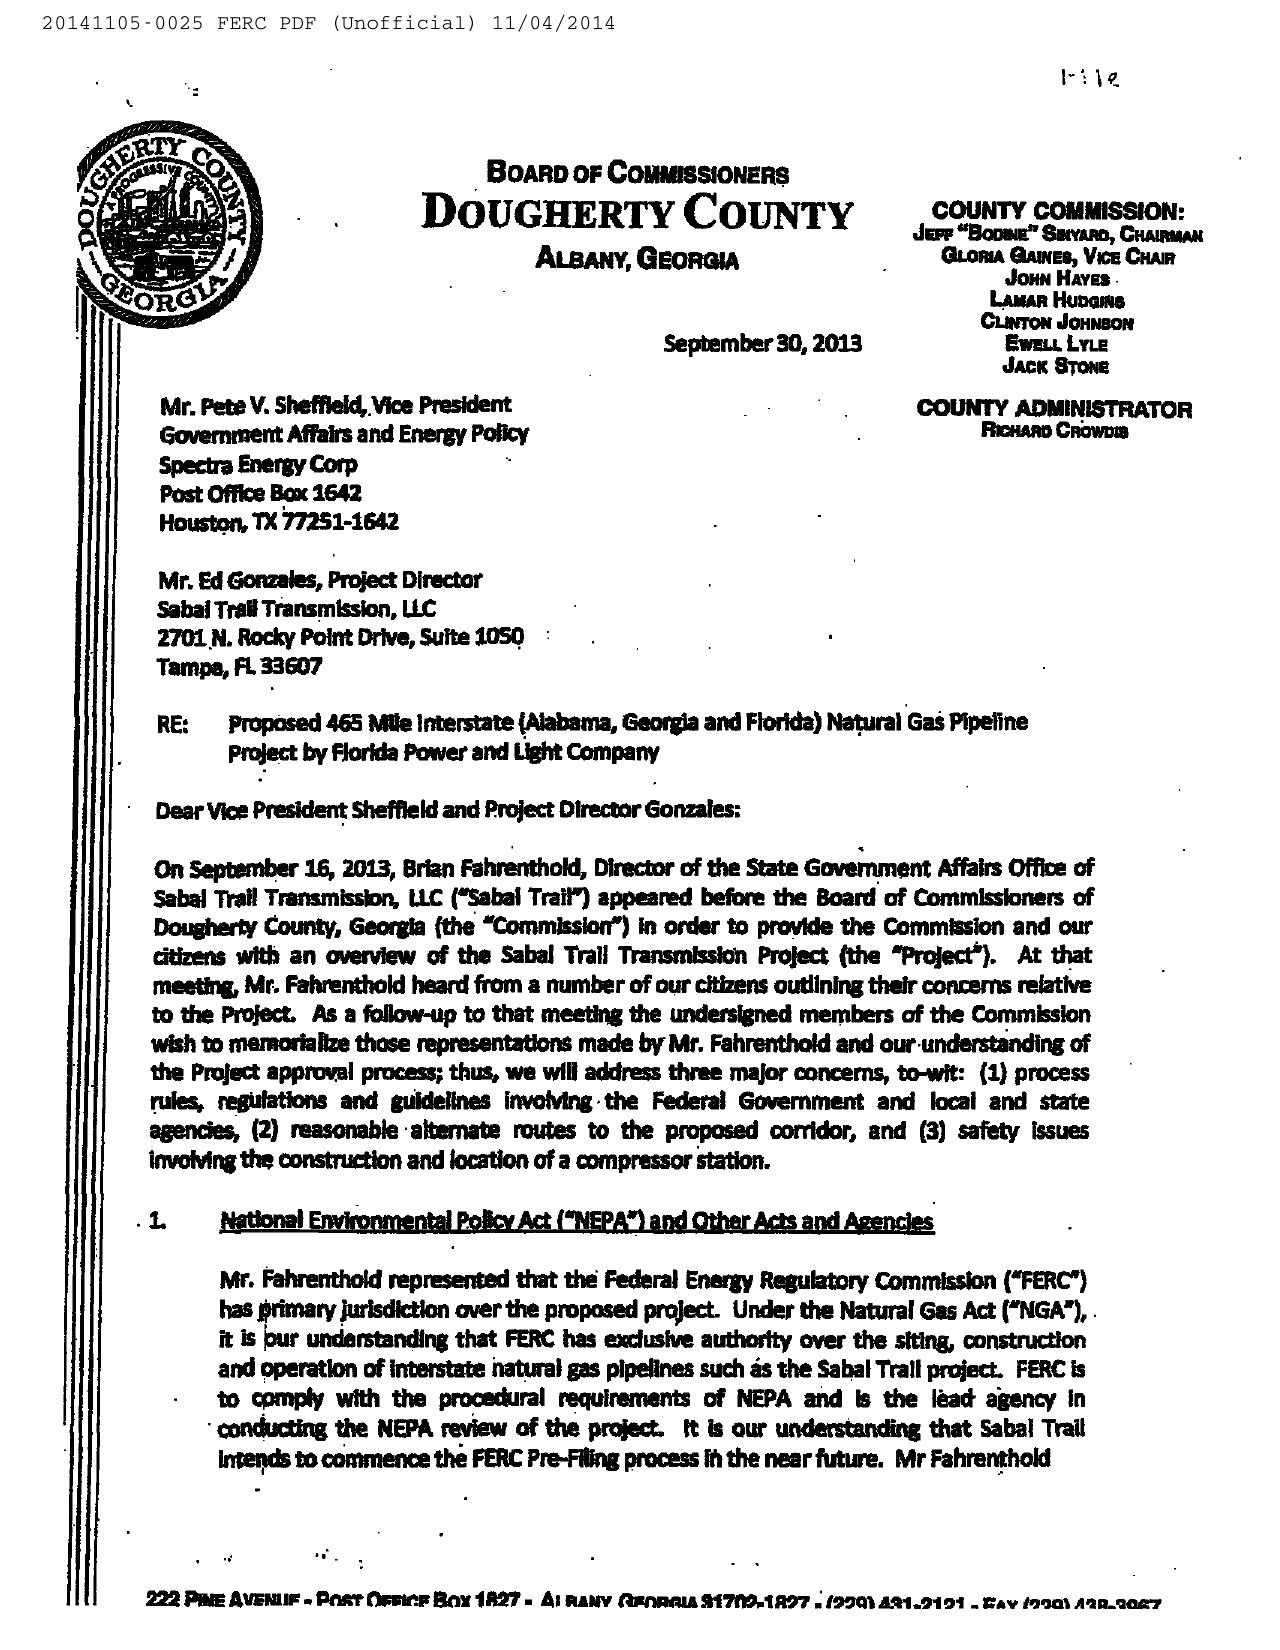 1280x1650 To Spectra 2013-09-30 (1 of 4), in Resolution No. 14-019 pipeline and compressor station, by Dougherty County Commission, for SpectraBusters.org, 5 November 2014